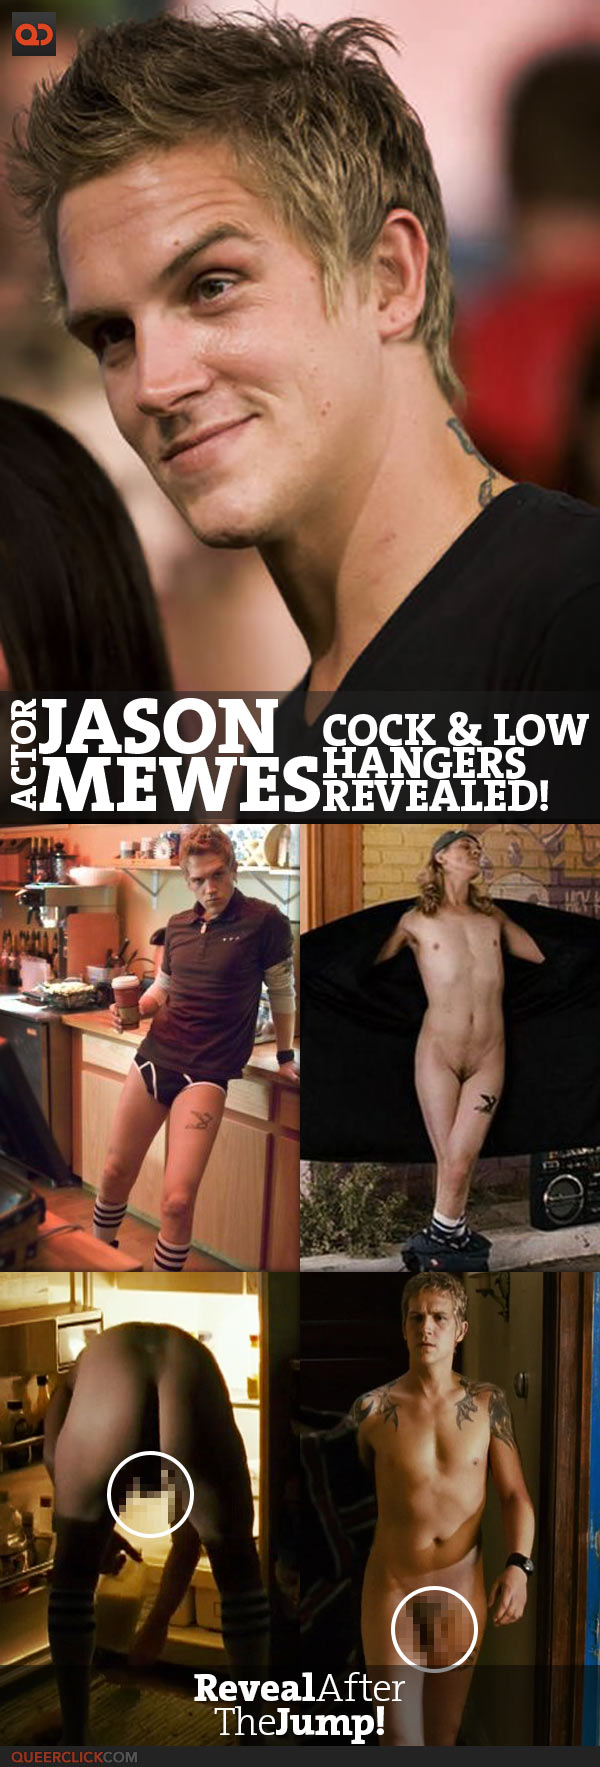 James mewes nude sex